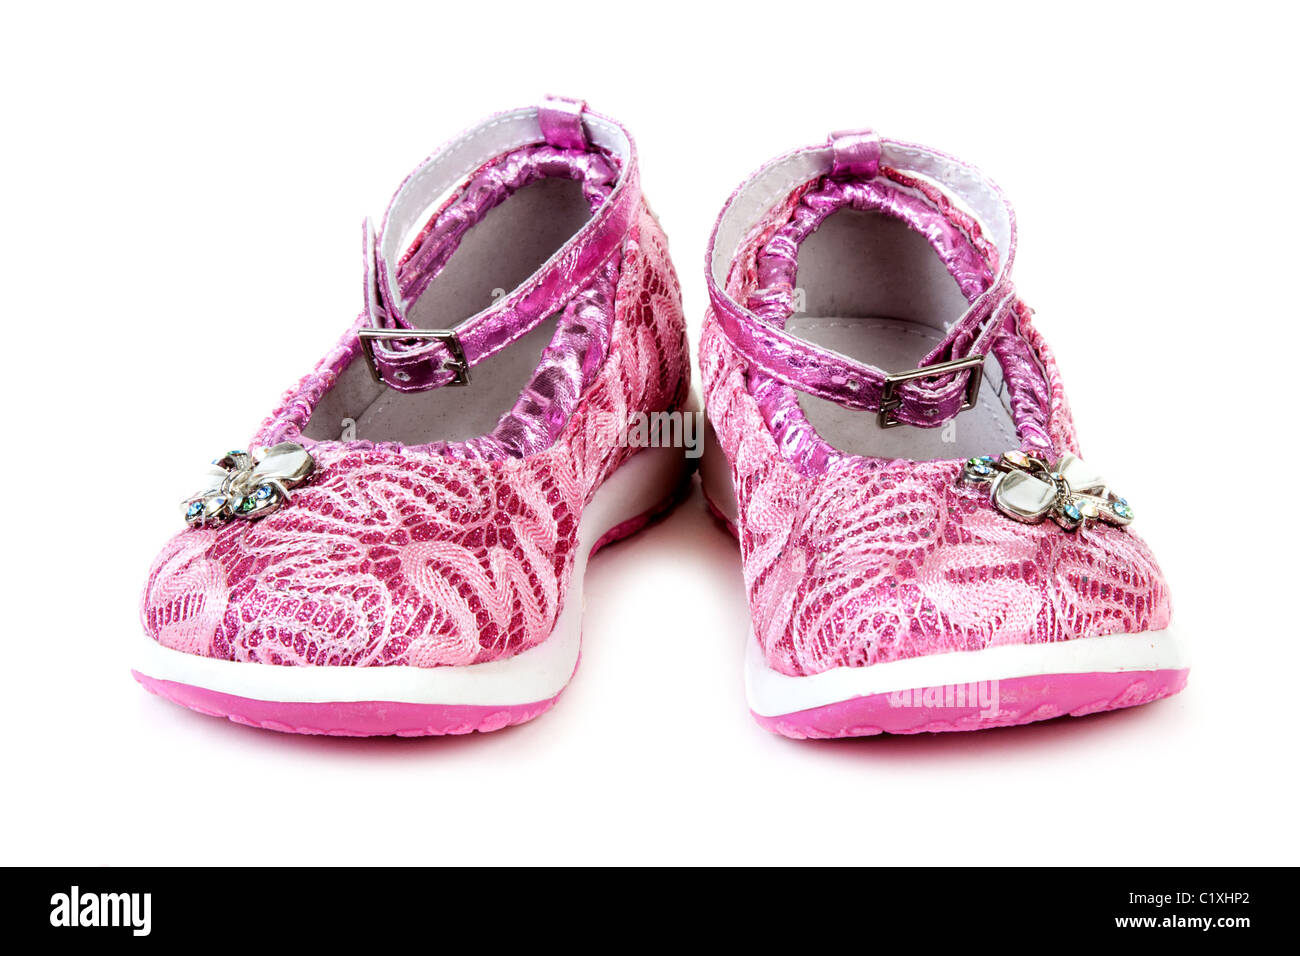 f0fbd2010b37f Rose baby sandals insulated on white background Stock Photo ...